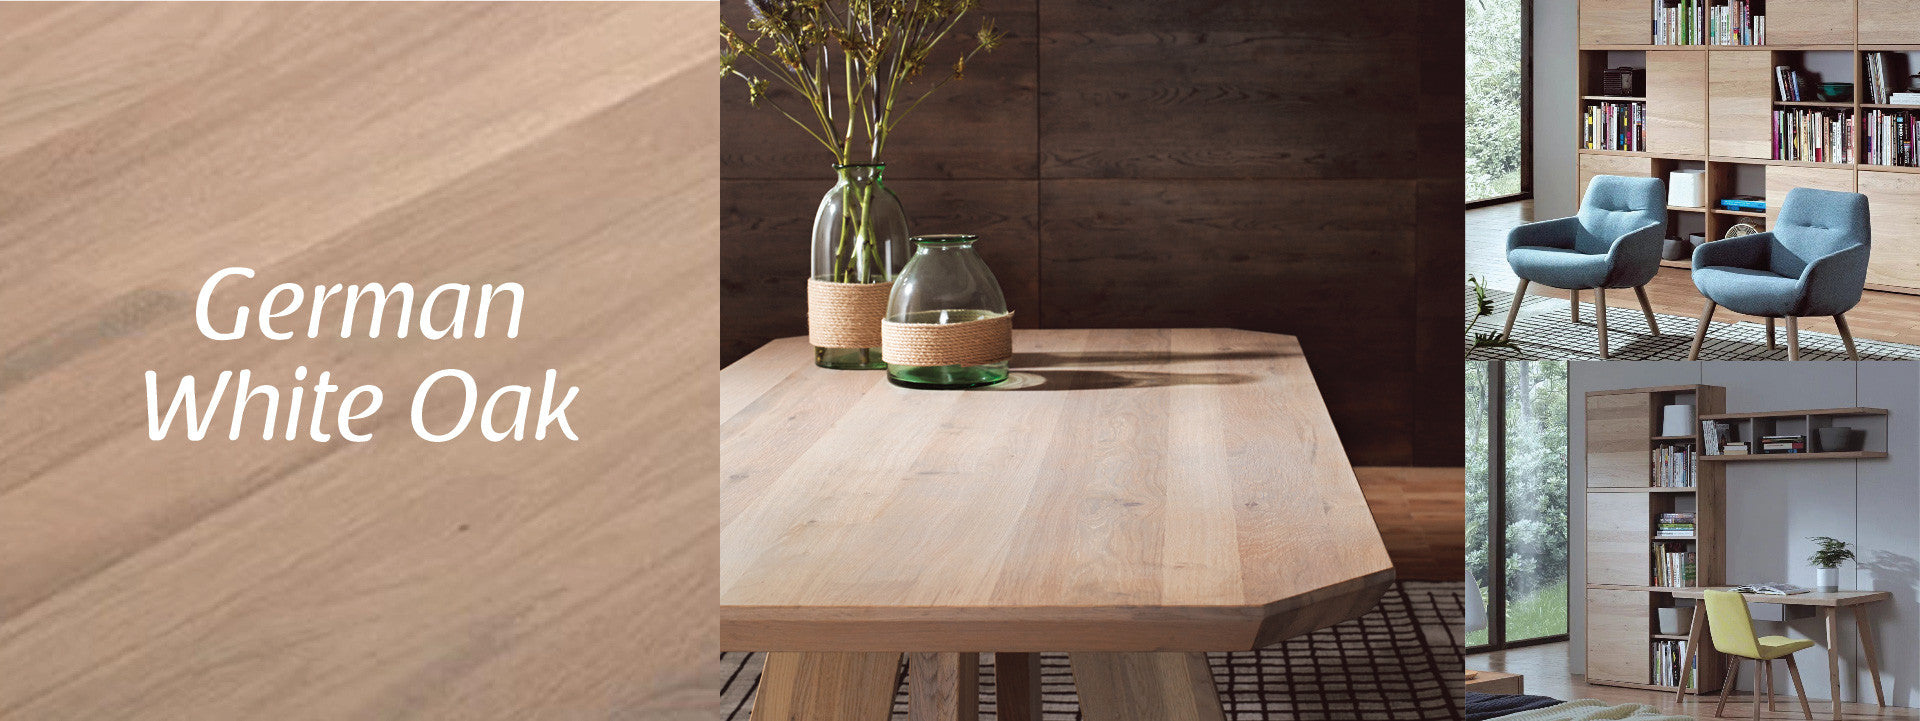 The German White Oak (botanically Known As Quercus Alba), Is A Highly  Sought-after Type Of Wood In Furniture Making For Its Unique Closed Cellular Structure ...